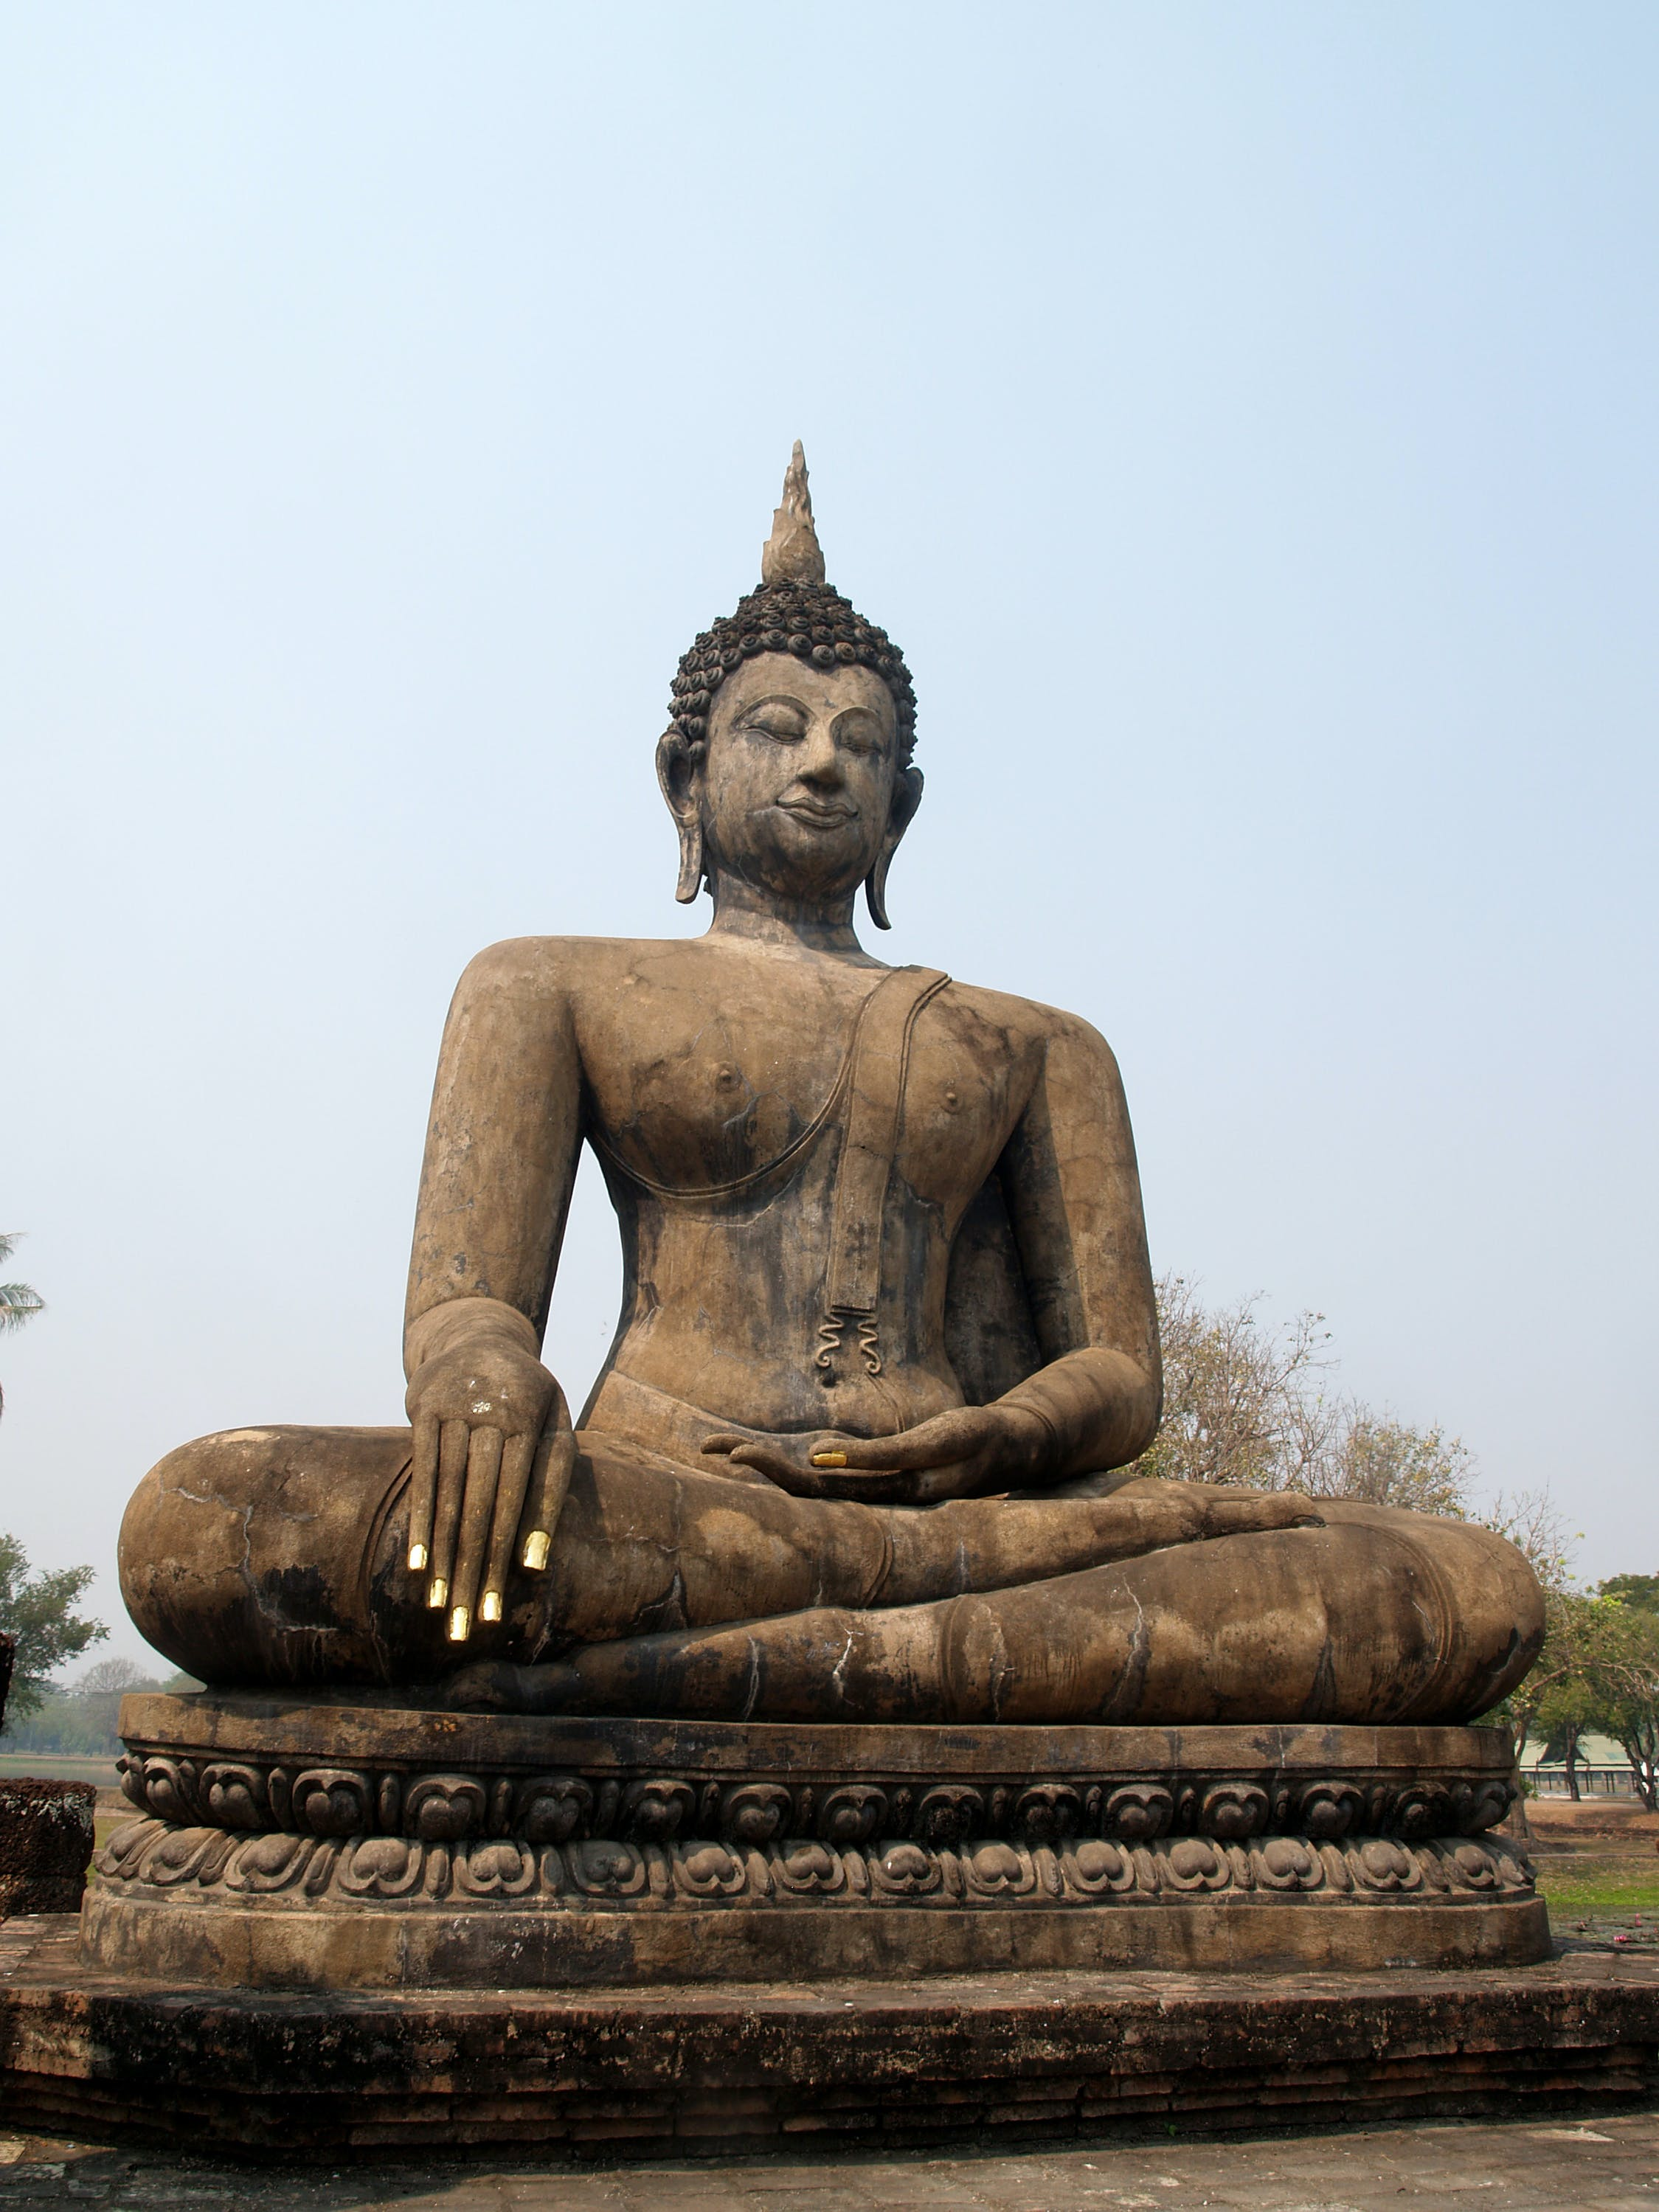 Brown Sitting Budha Statue Under Blue Sky